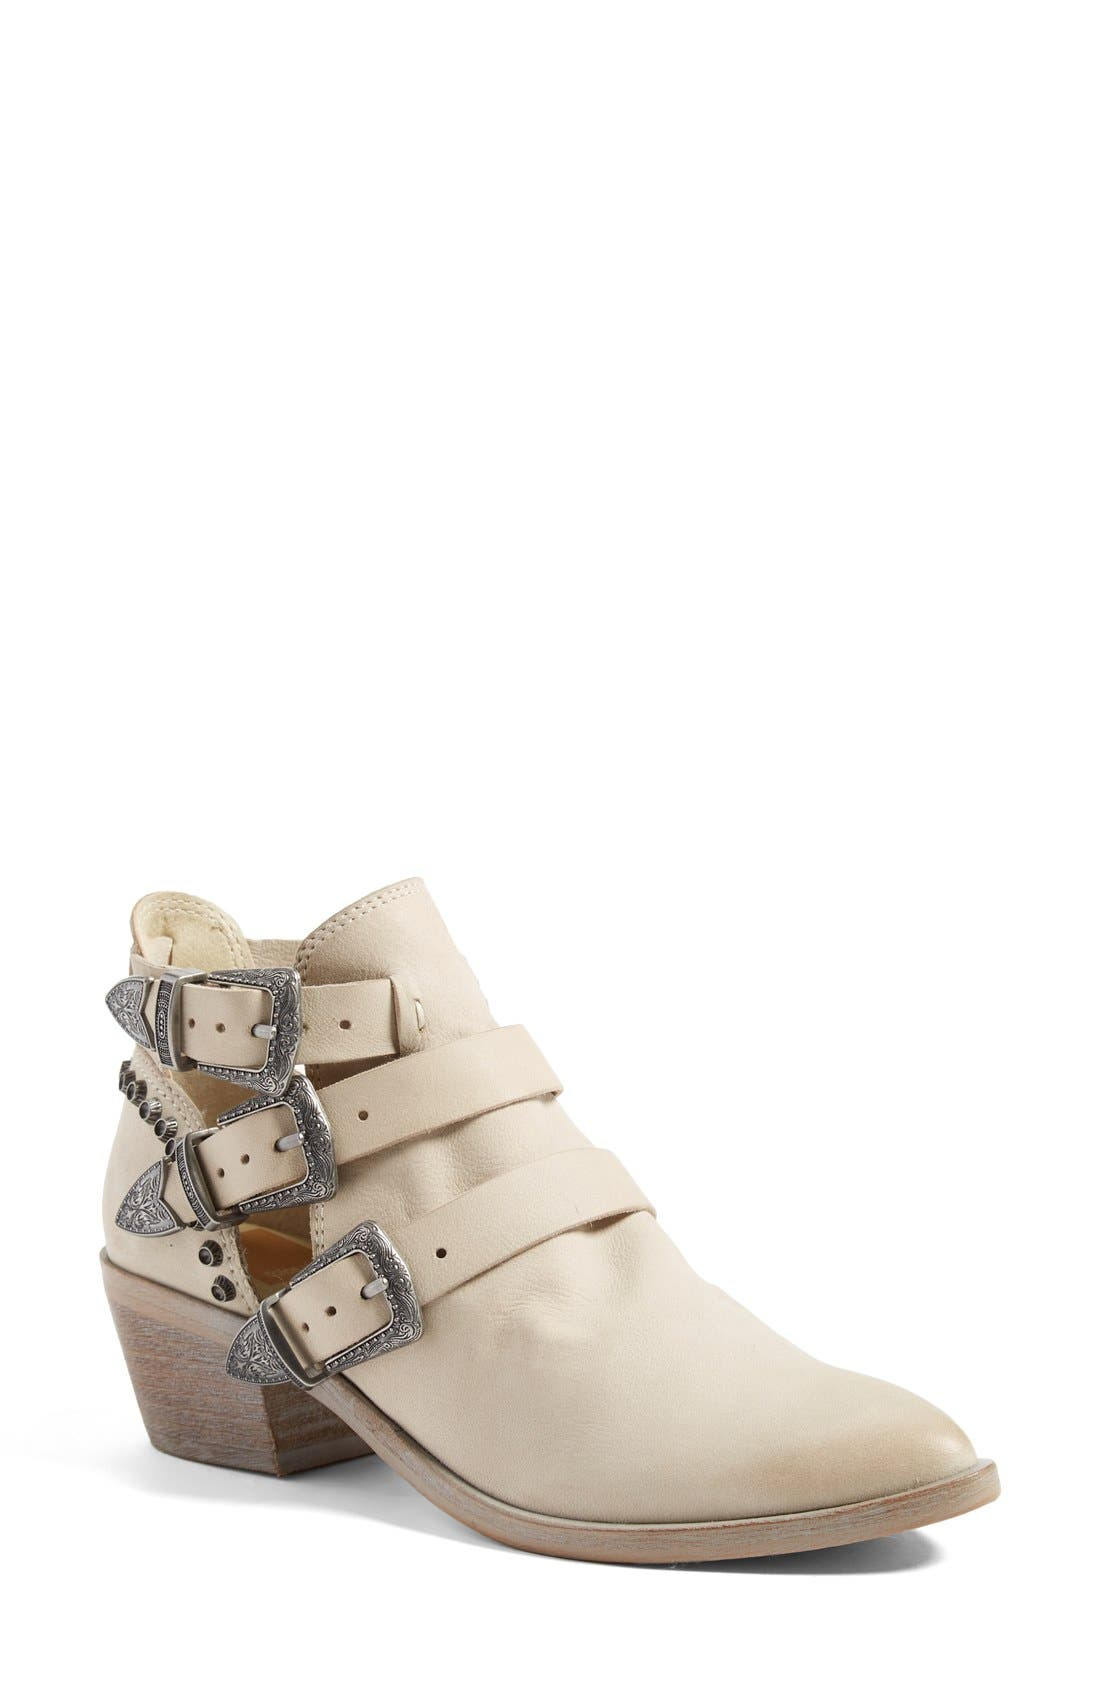 Main Image - Dolce Vita 'Spur' Buckle Strap Bootie (Women)